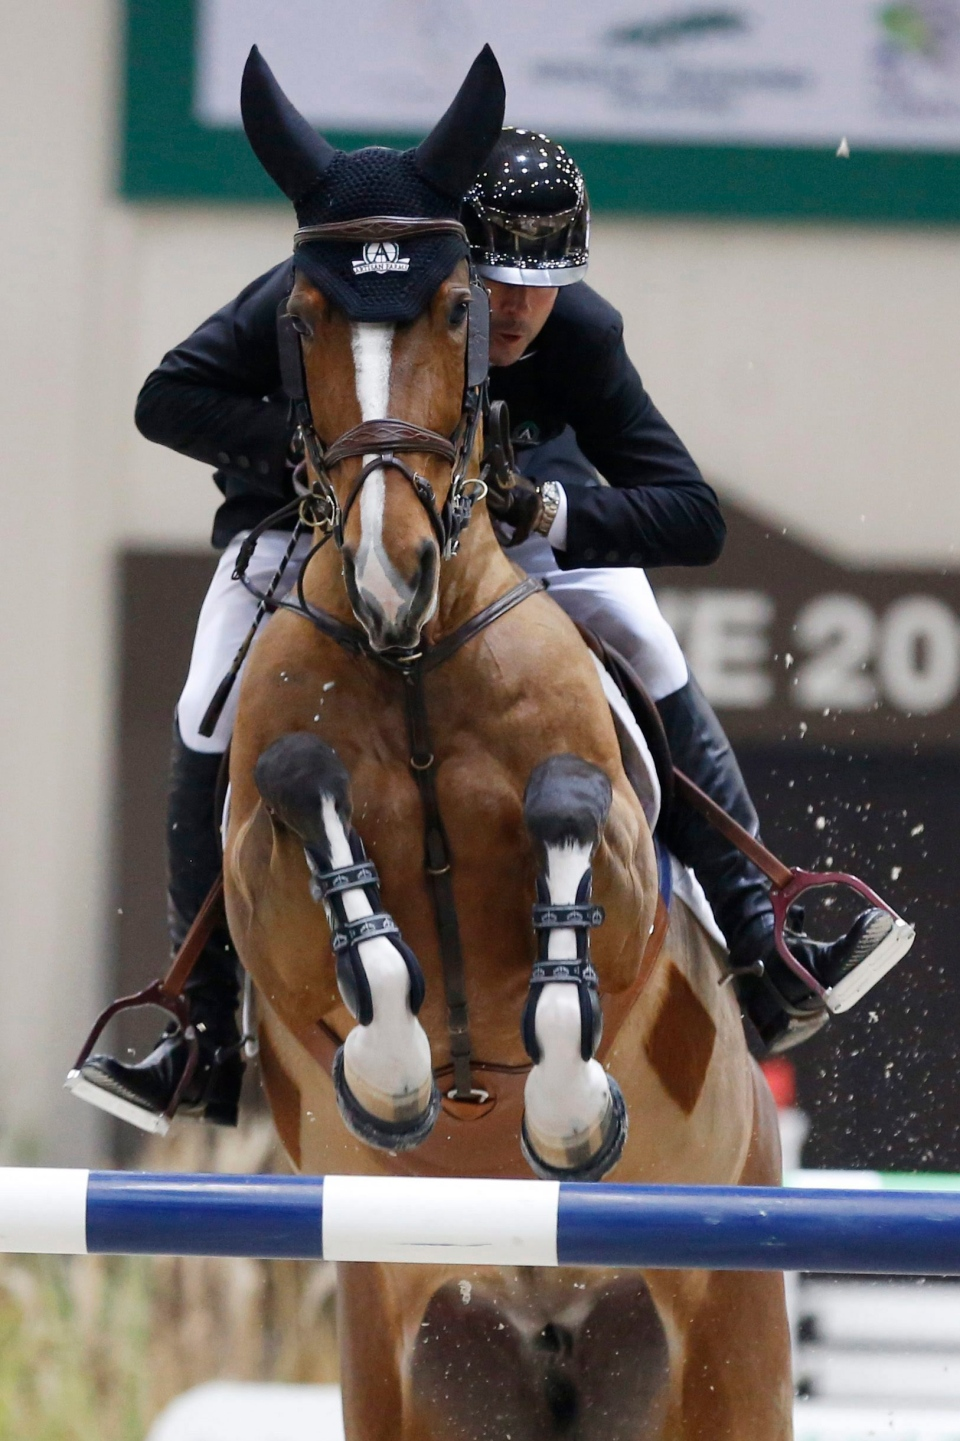 Eric Lamaze from Canada rides his horse Fine Lady 5 during the final ceremony of the 16th top 10 IJRC, International Jumping Riders Club, at the 56th CHI international horse show jumping tournament in Geneva, Switzerland, Friday, Dec. 9, 2016. Lamaze took first place. (Magali Girardin/Keystone via AP)